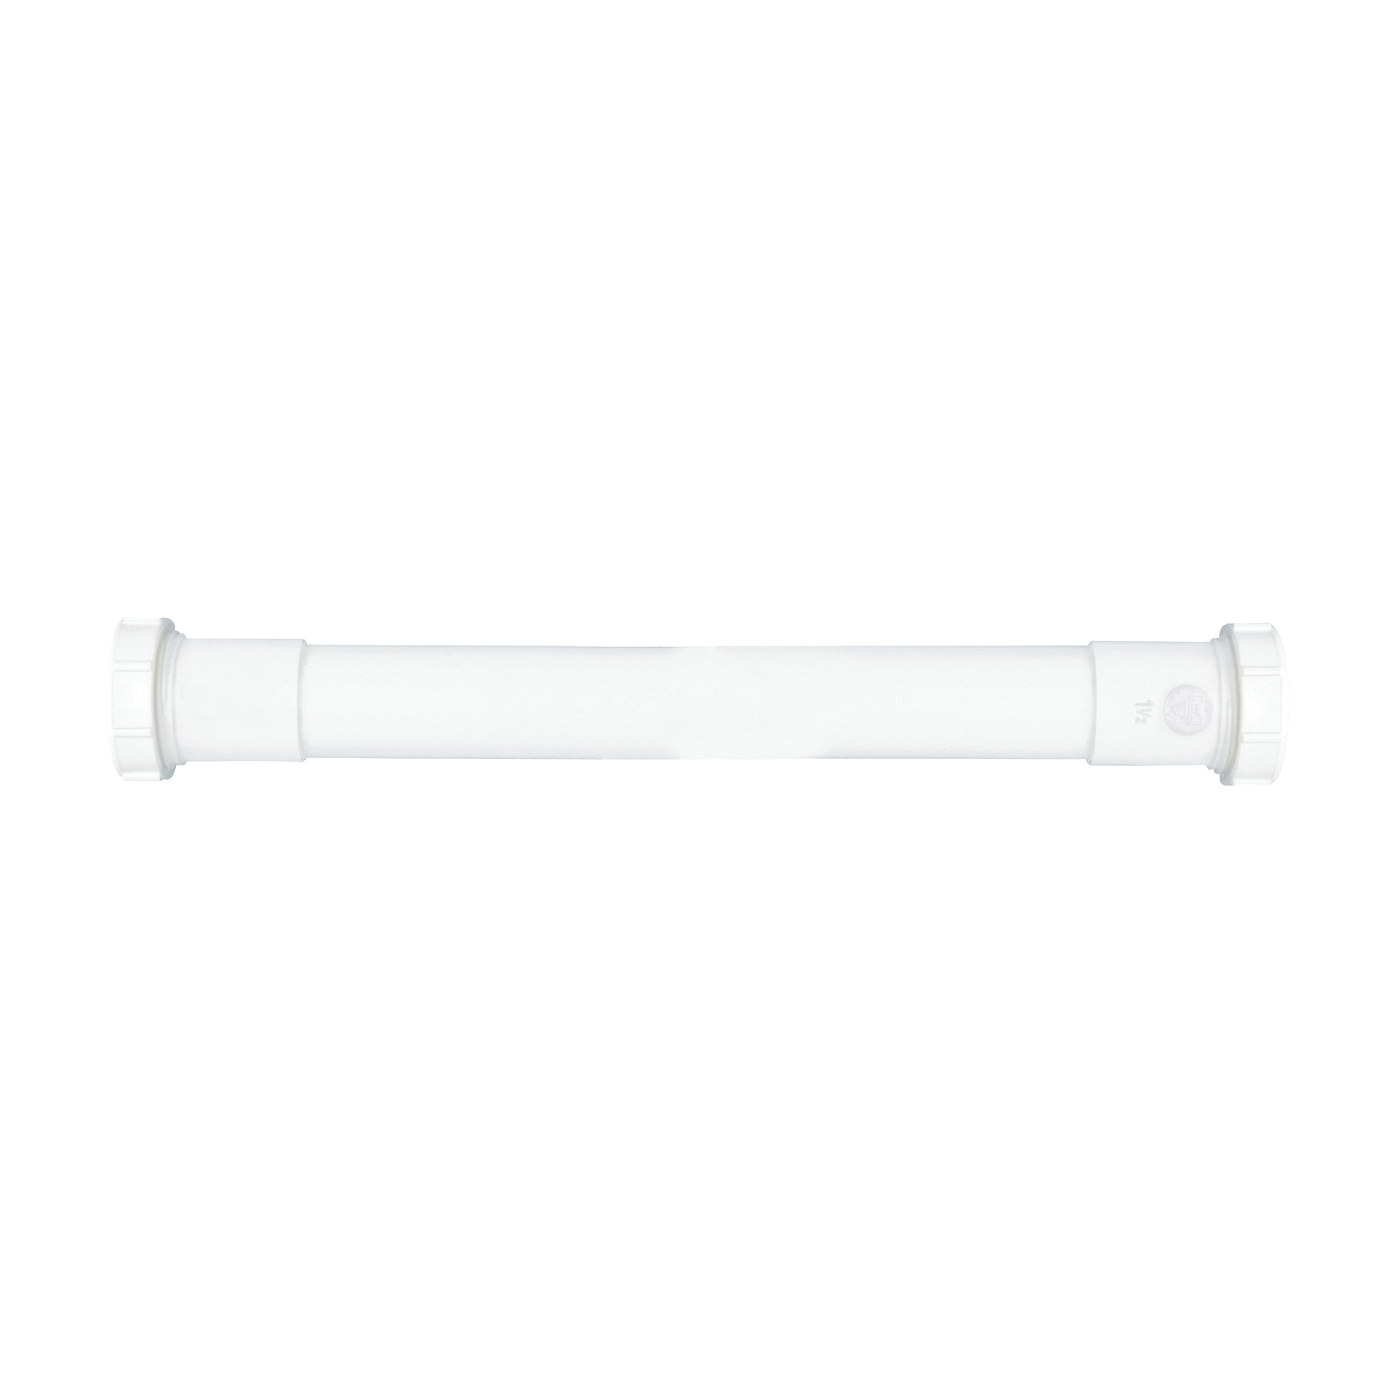 Picture of Plumb Pak PP42-16W Extension Tube, 1-1/4 in, 16 in L, Slip Joint, Plastic, White